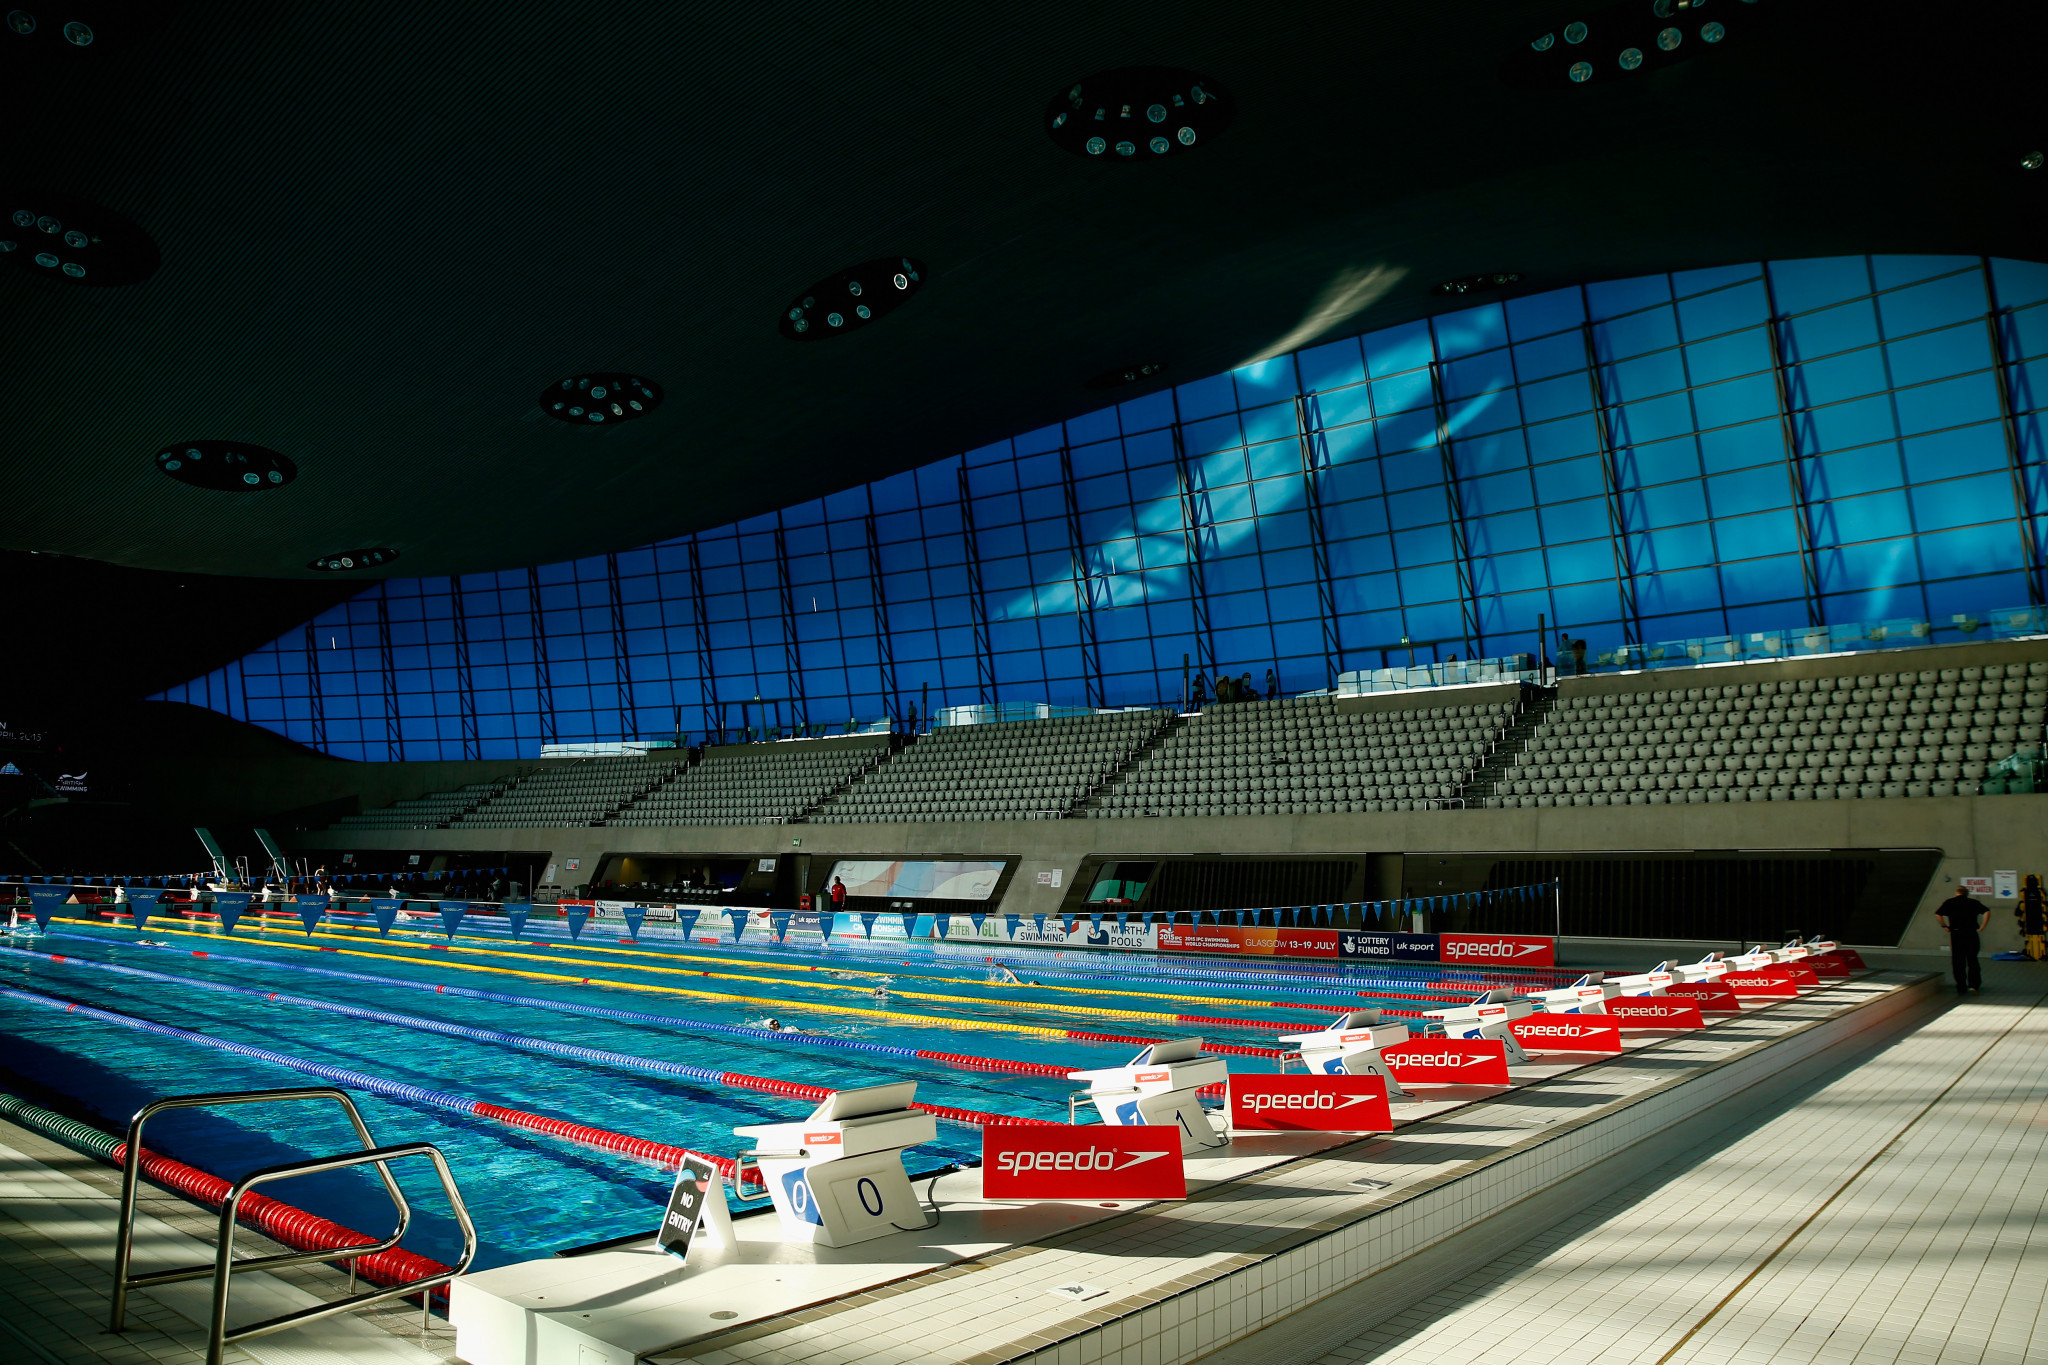 London Aquatics Centre will host the 2019 World Para Swimming Championships ©Getty Images